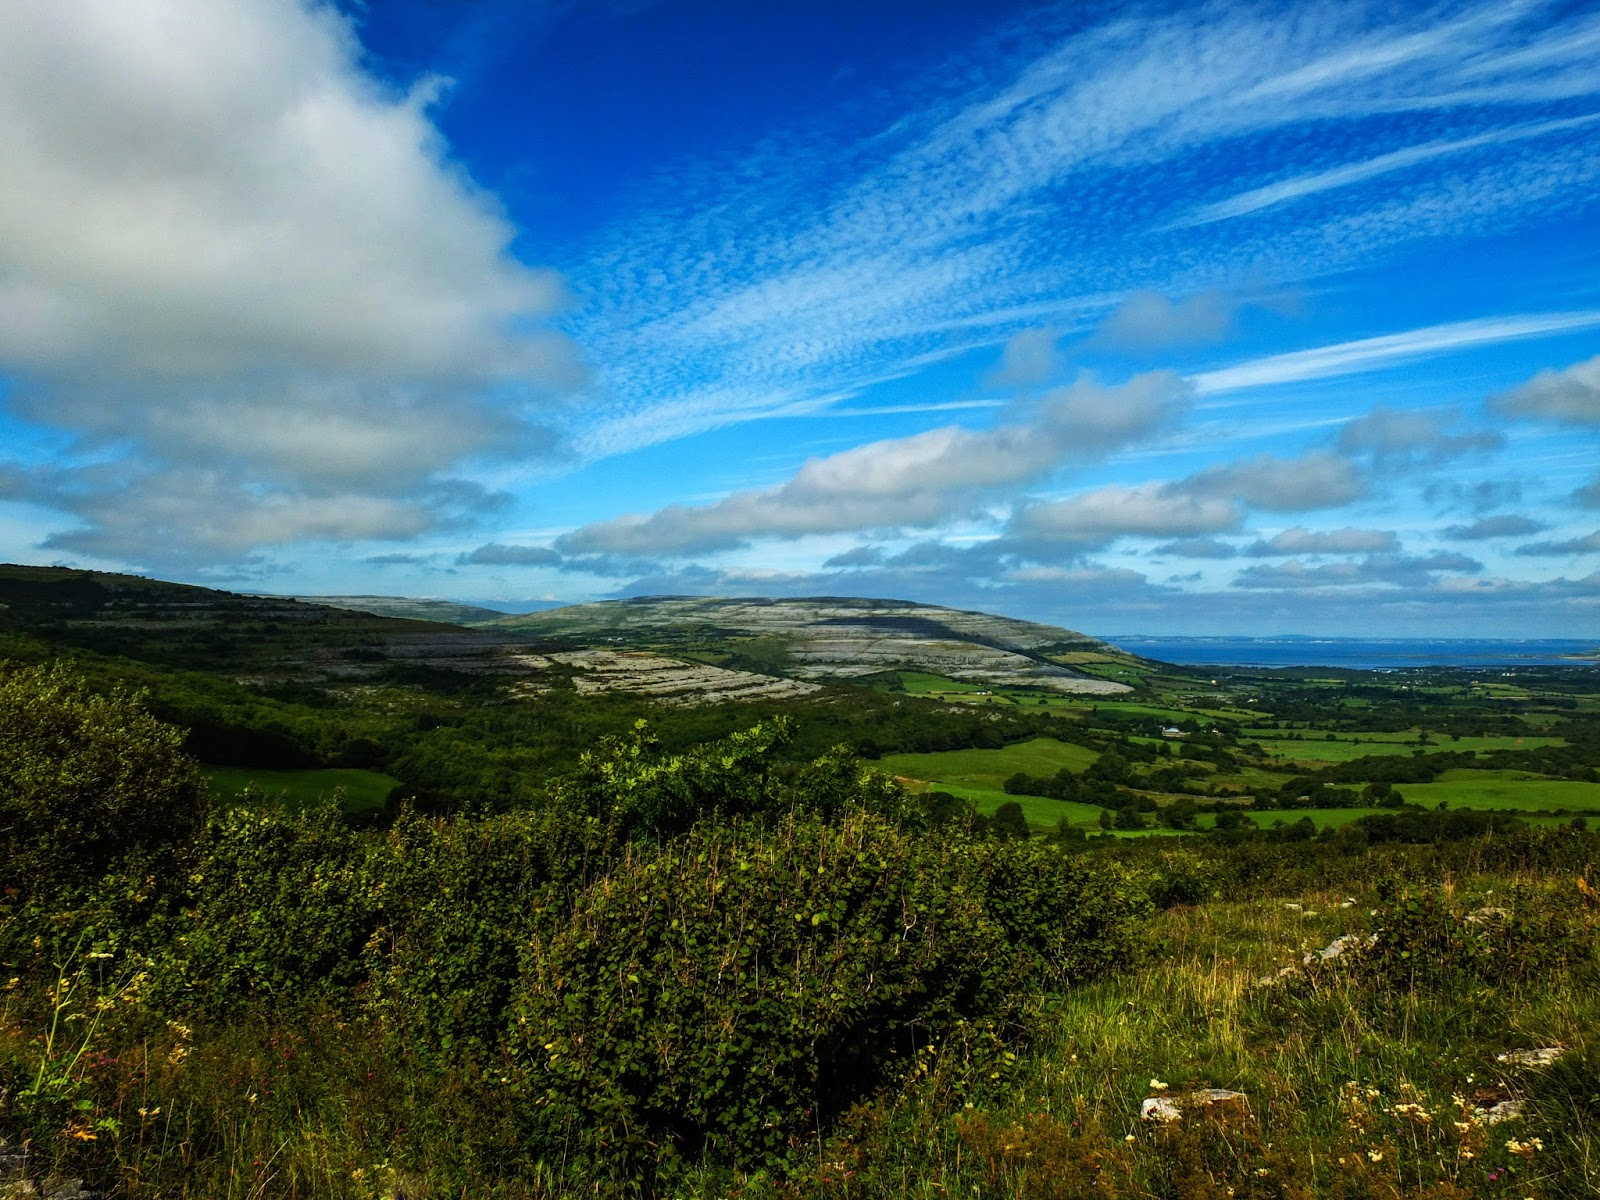 Landscape of the Burren area in Co.Clare on a sunny, blue sky day with clouds.